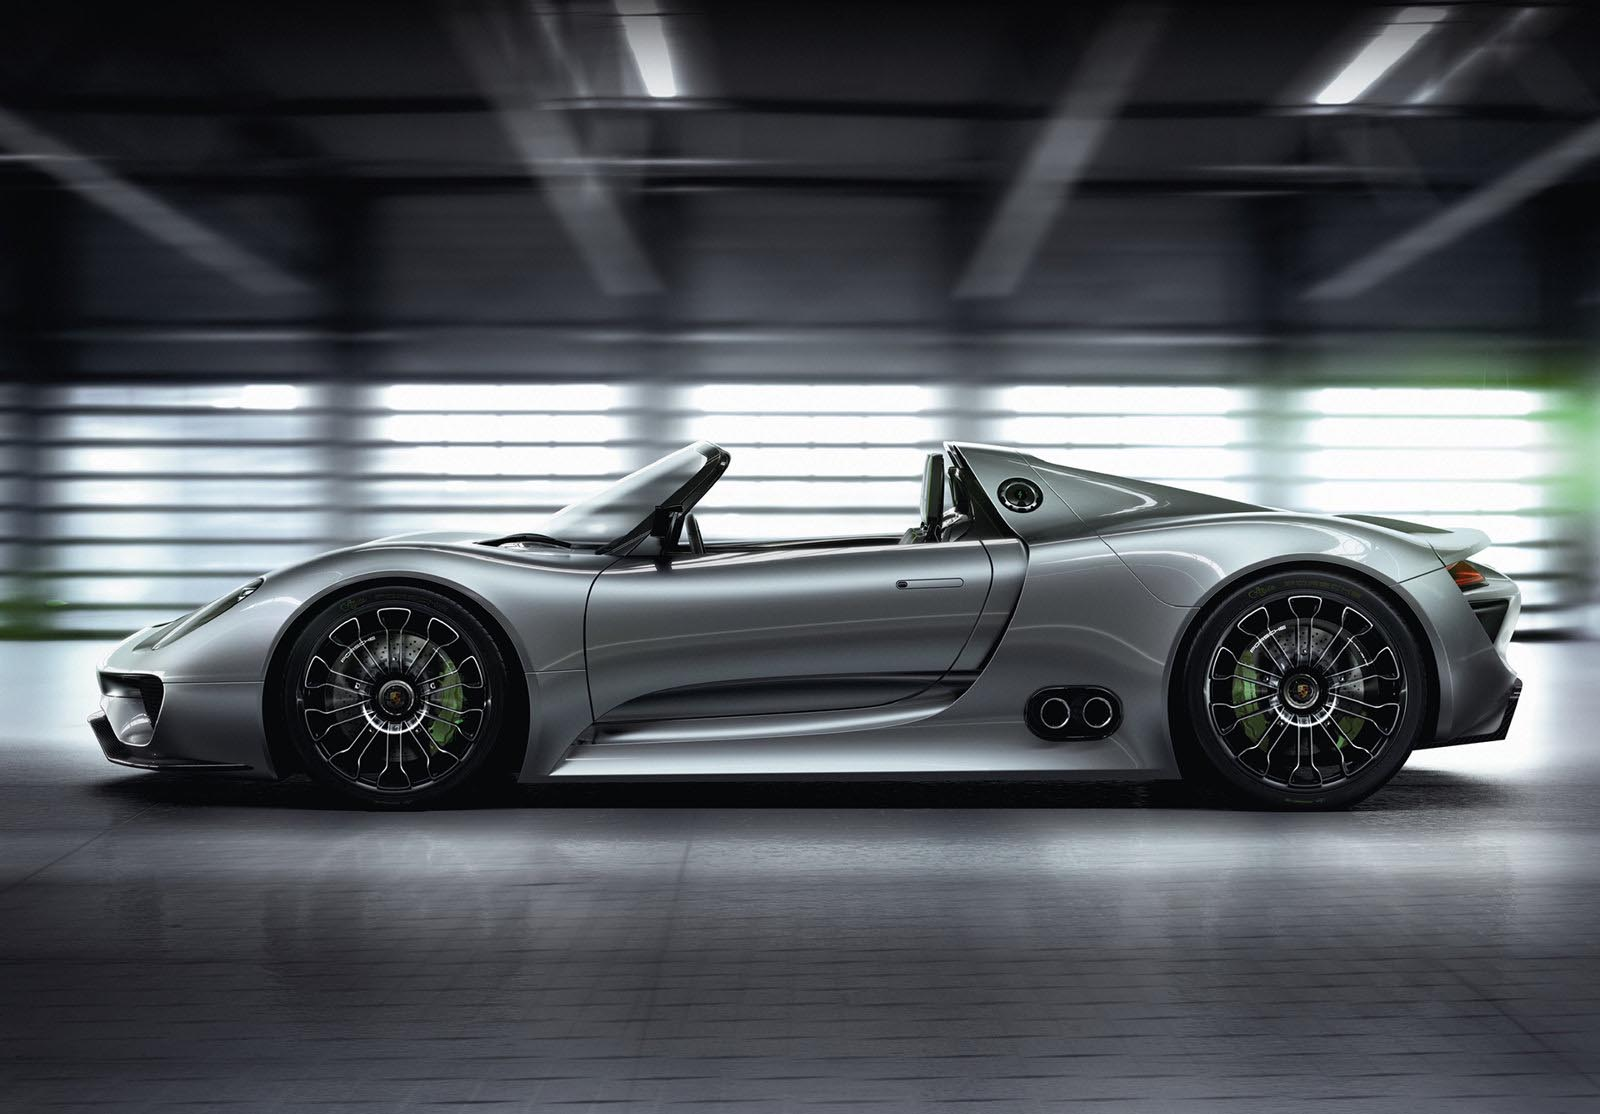 imagini porsche 918 spyder la geneva 2010. Black Bedroom Furniture Sets. Home Design Ideas